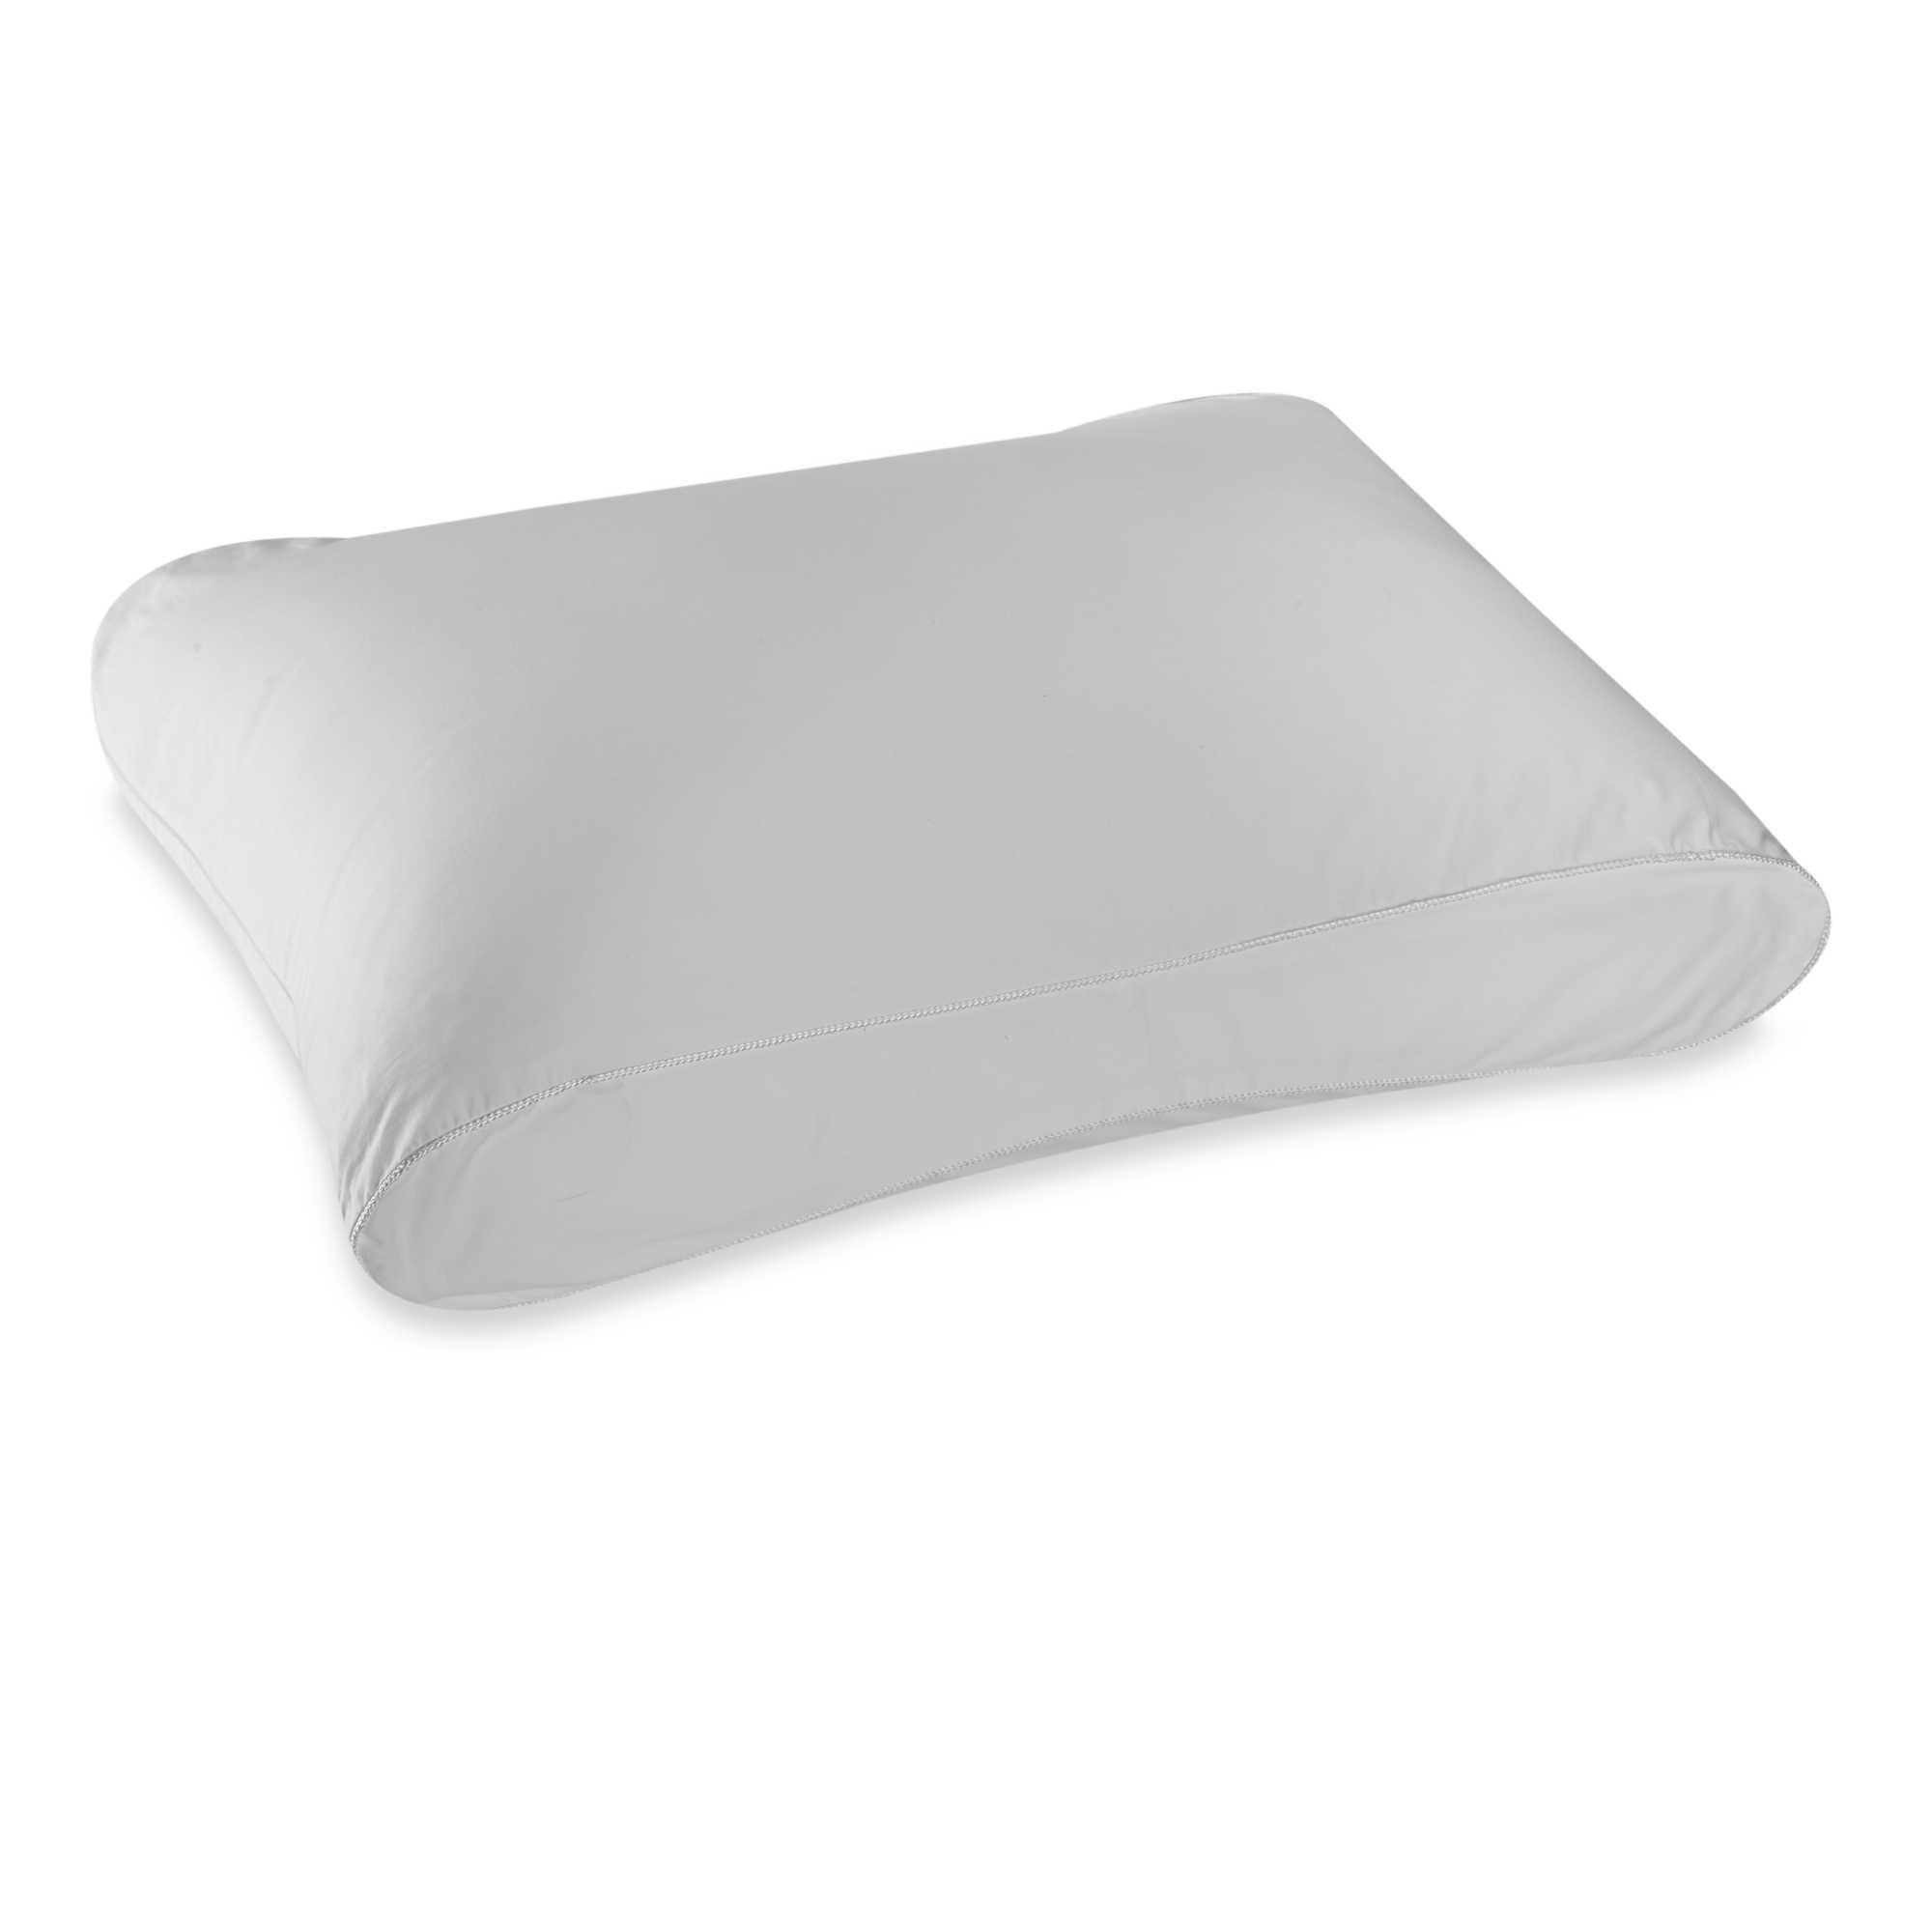 gelmax and reg gallery bath beyond core htm therapedic bed contour pillow cervical bedding trade tri